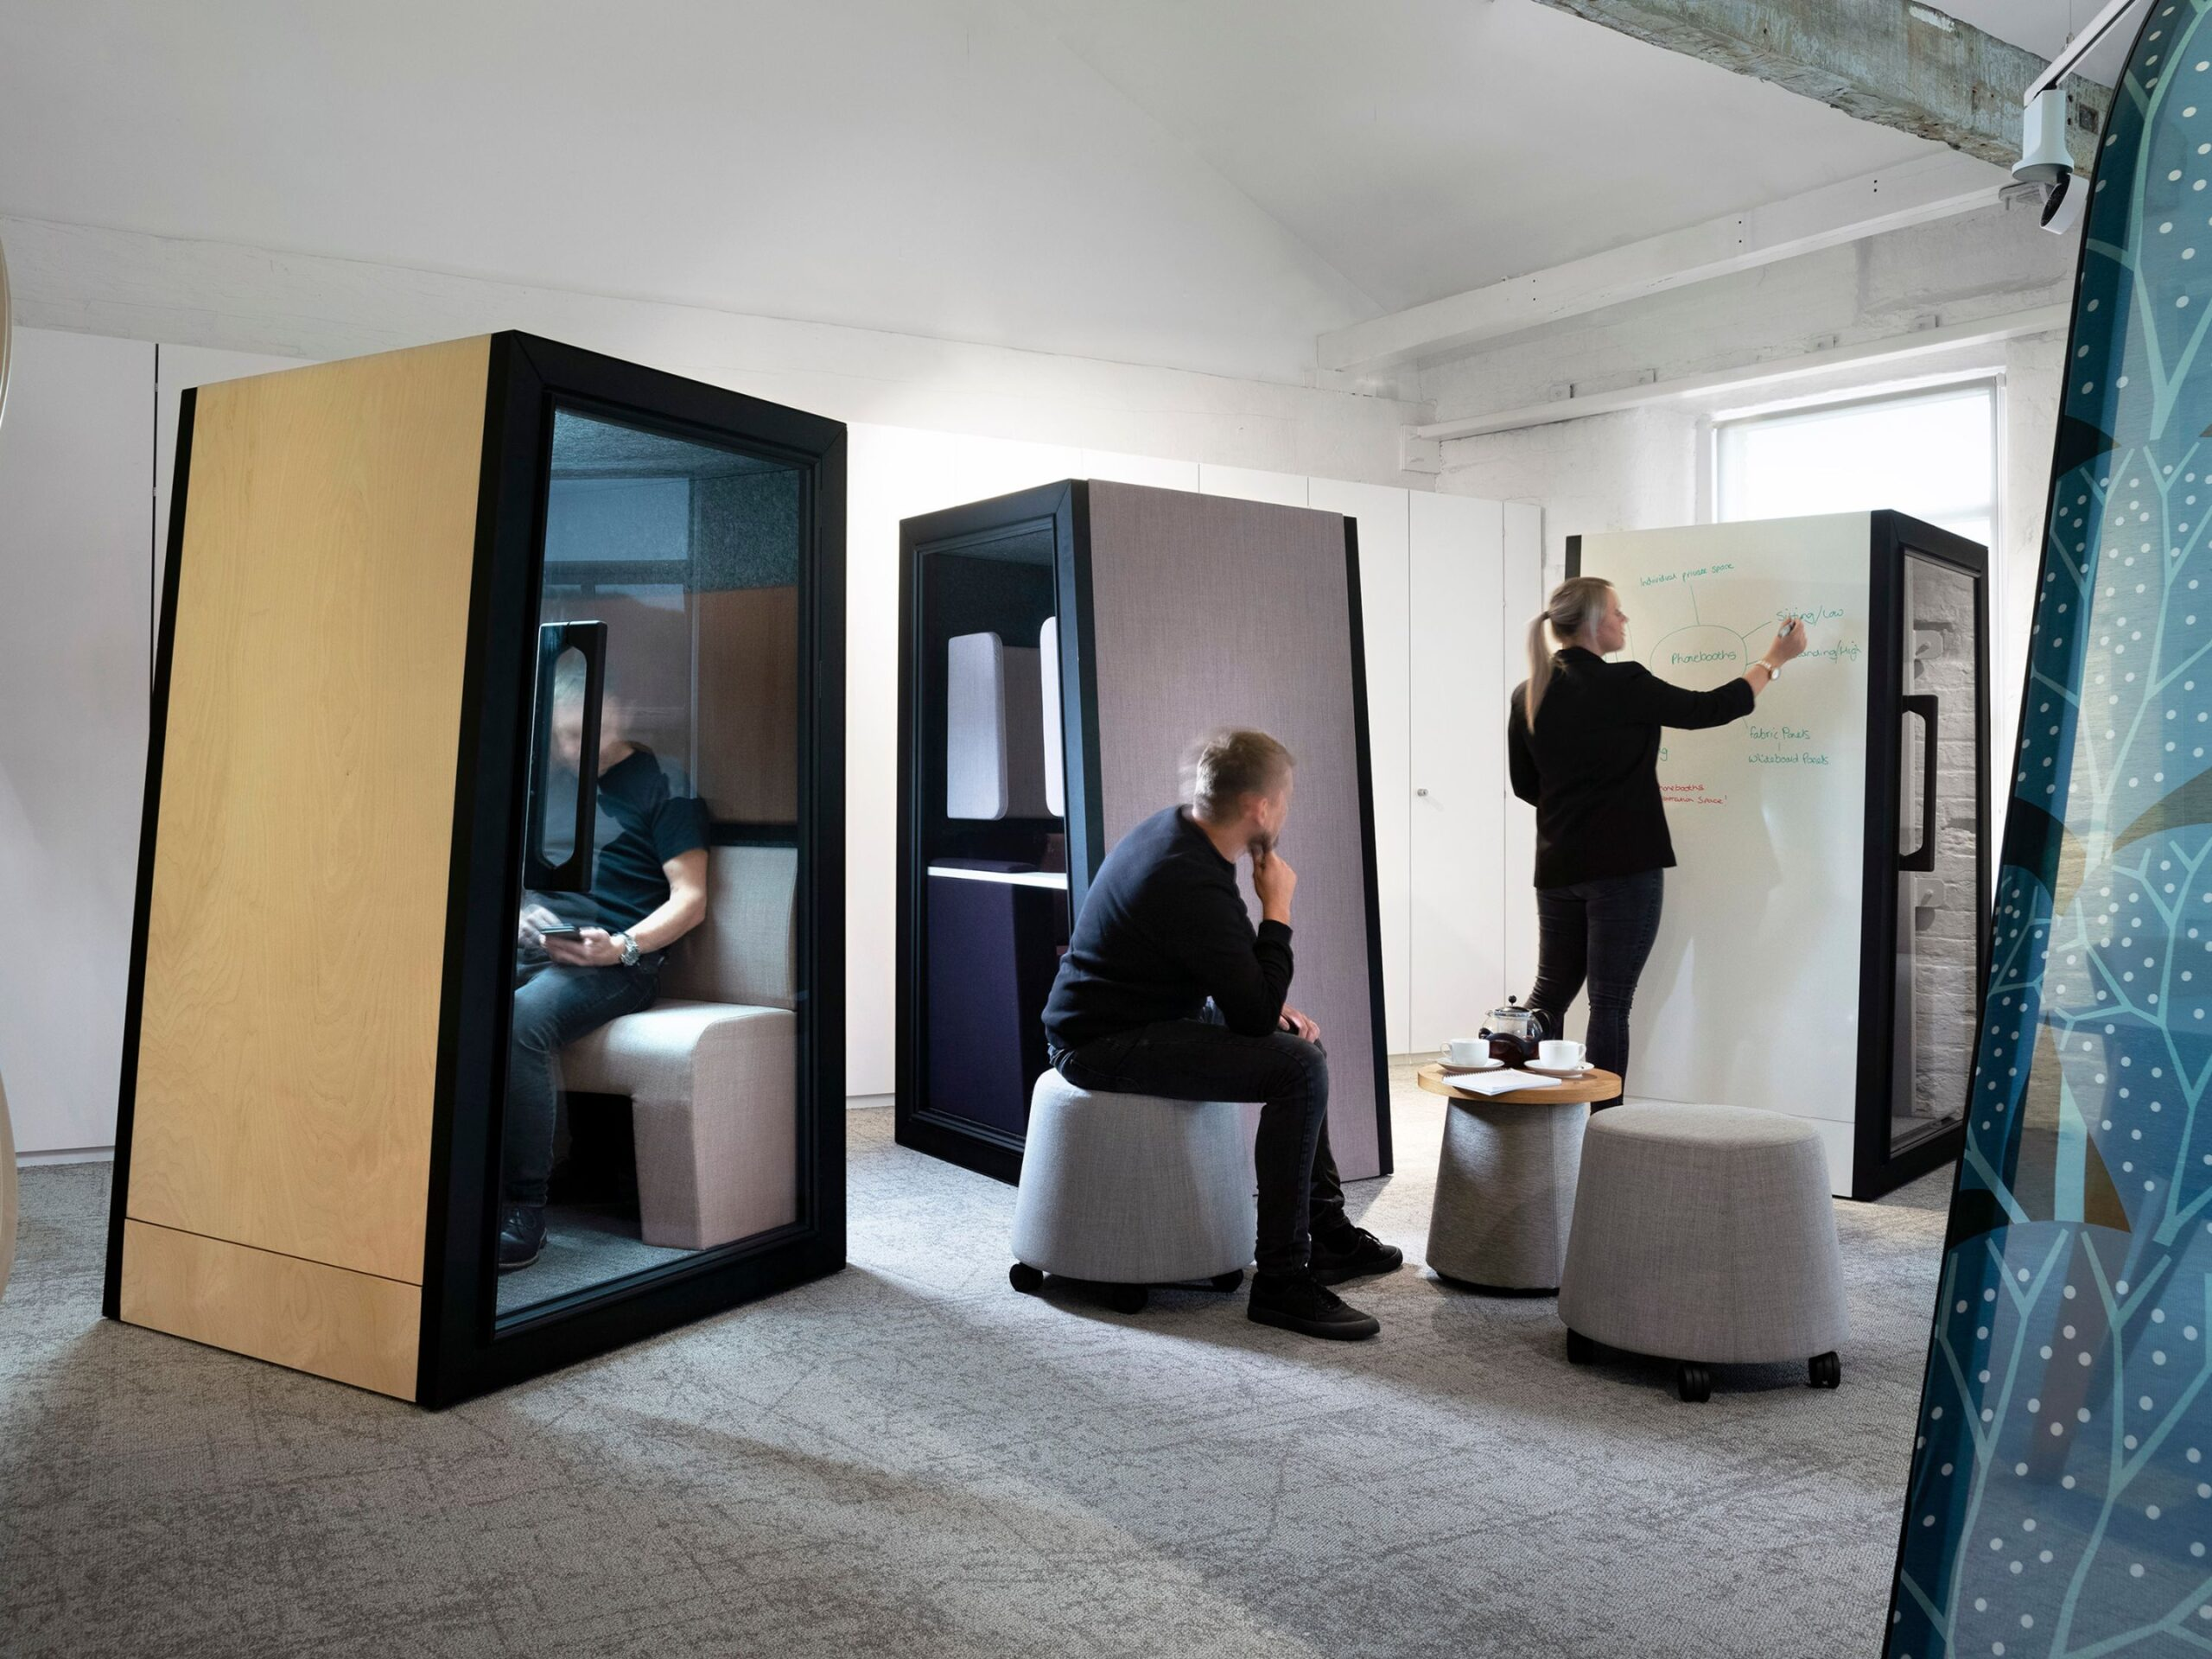 steelcase, movable screens, enclaves, office space